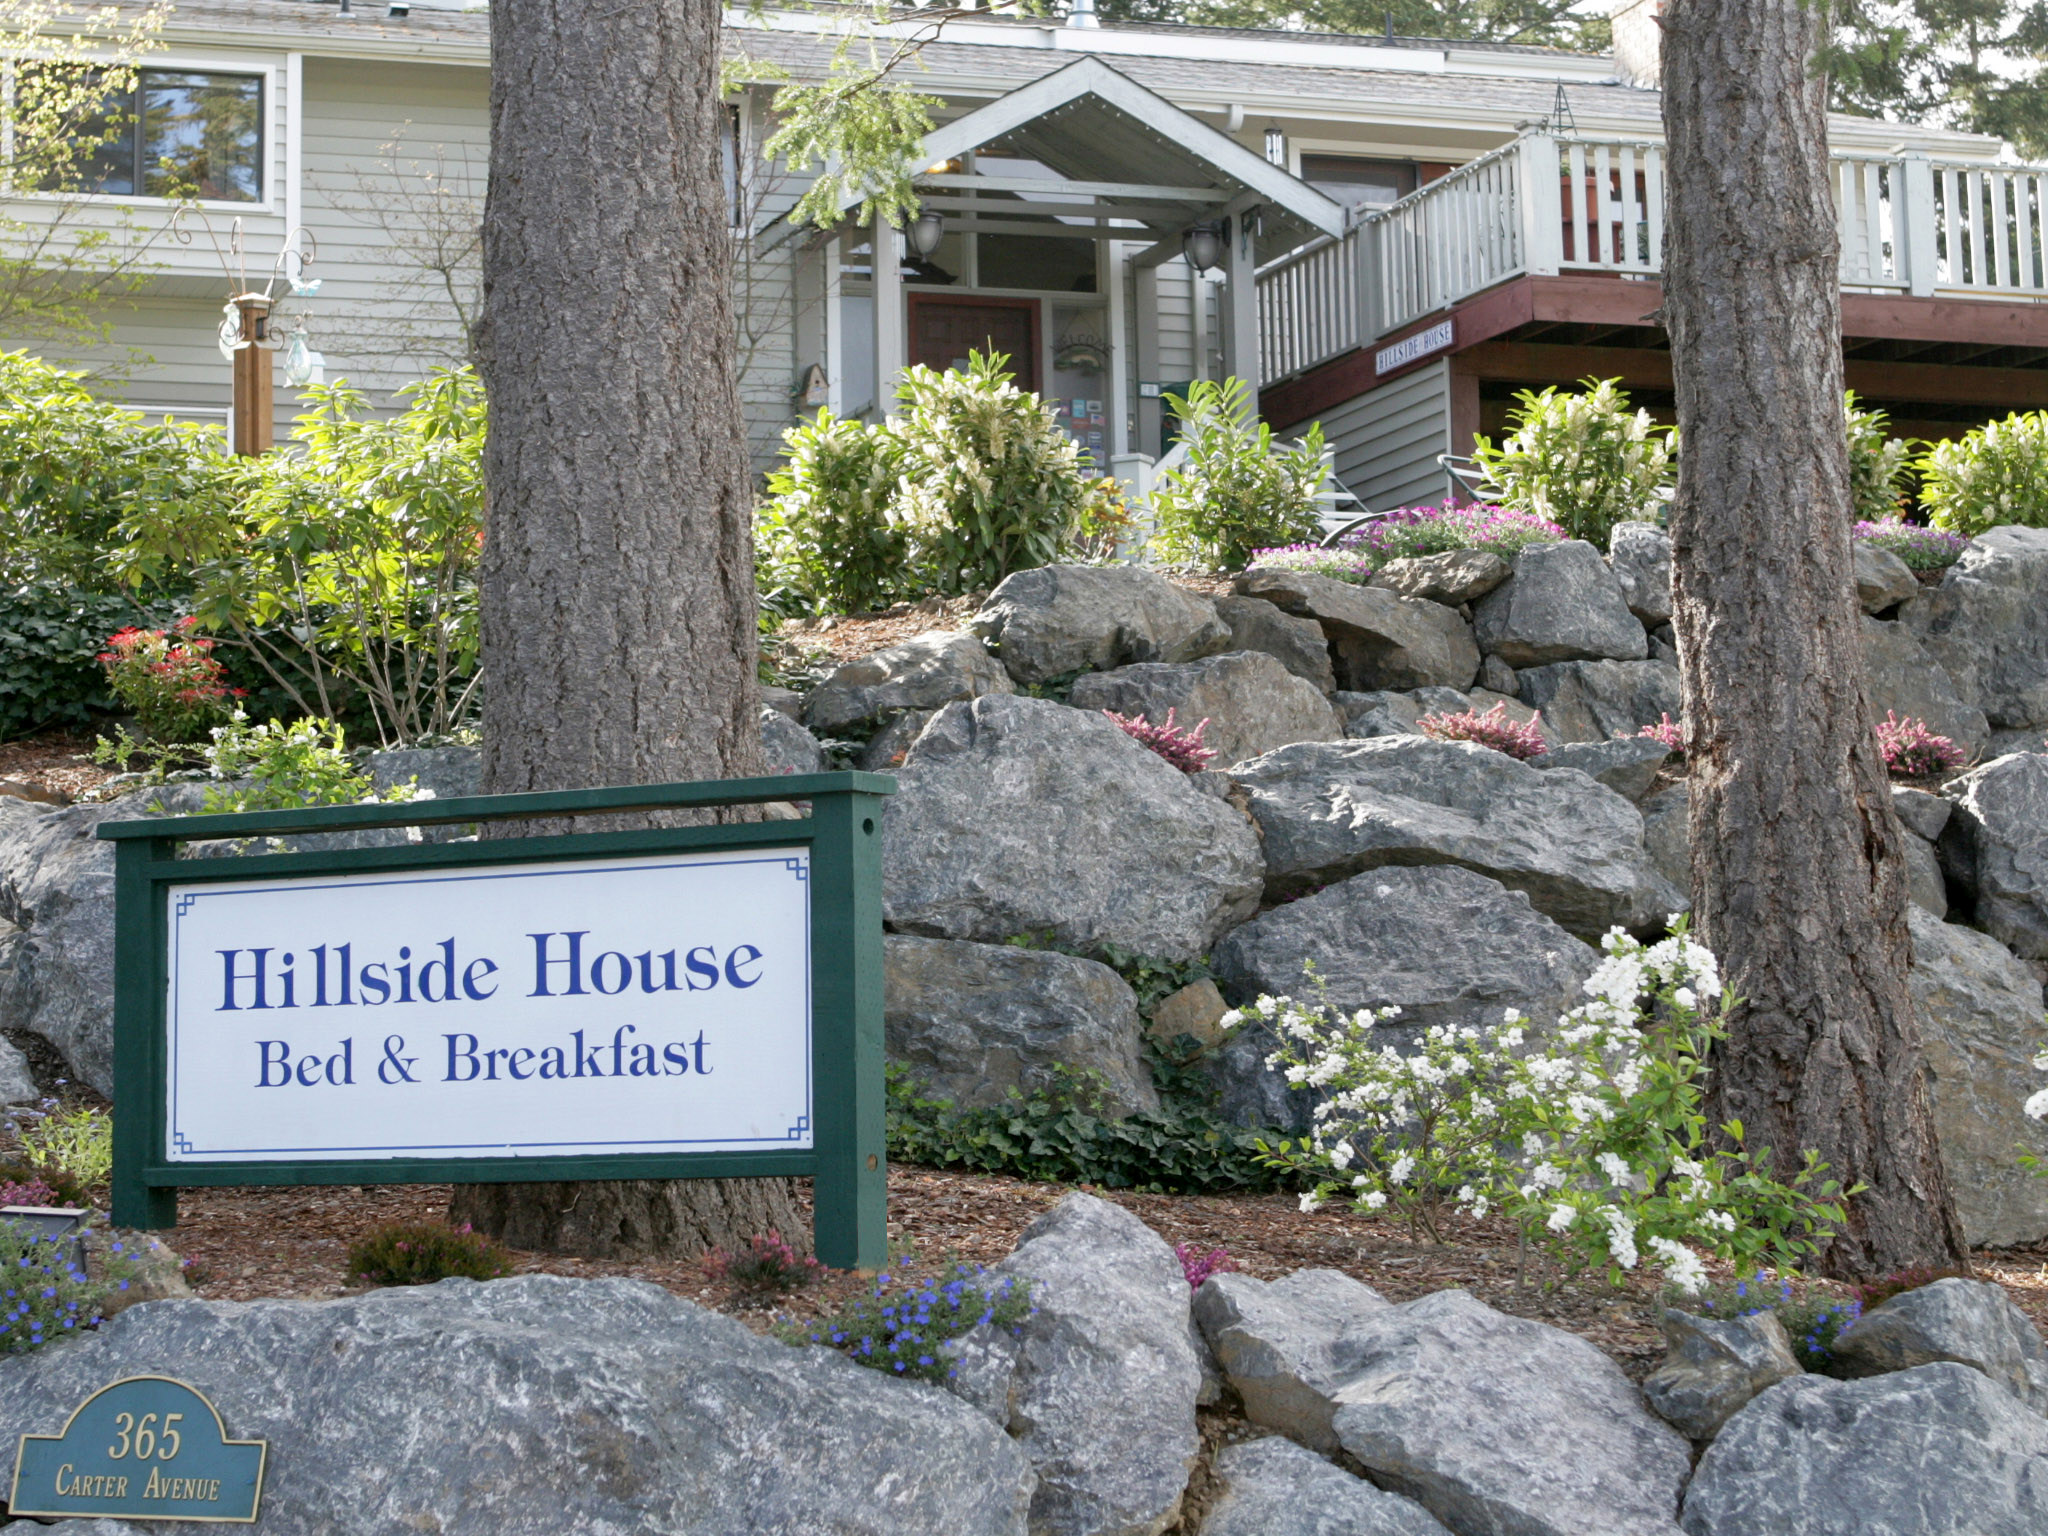 Hillside House Bed & Breakfast - Front